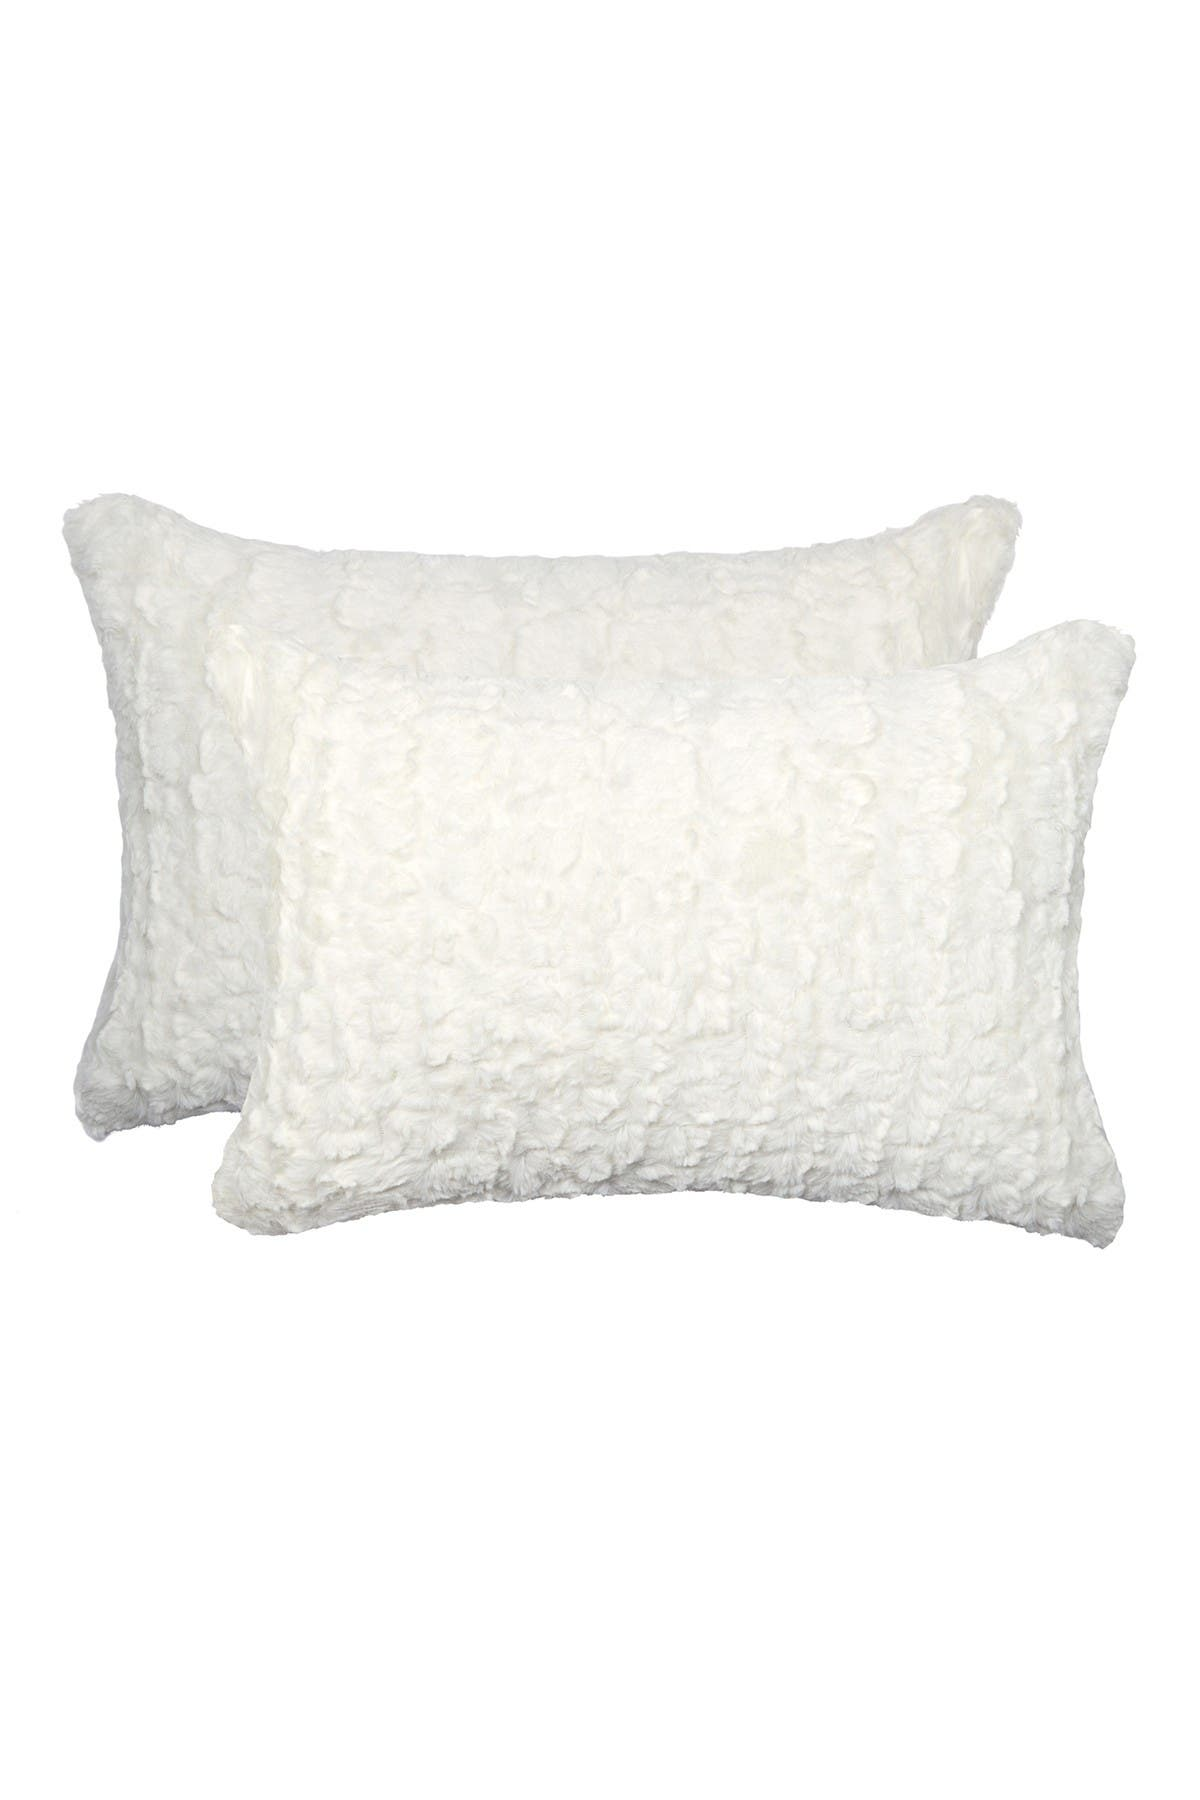 """Image of LUXE Belton Faux Fur Pillow - Set of 2 -20"""" x 12"""" - Ivory Mink"""